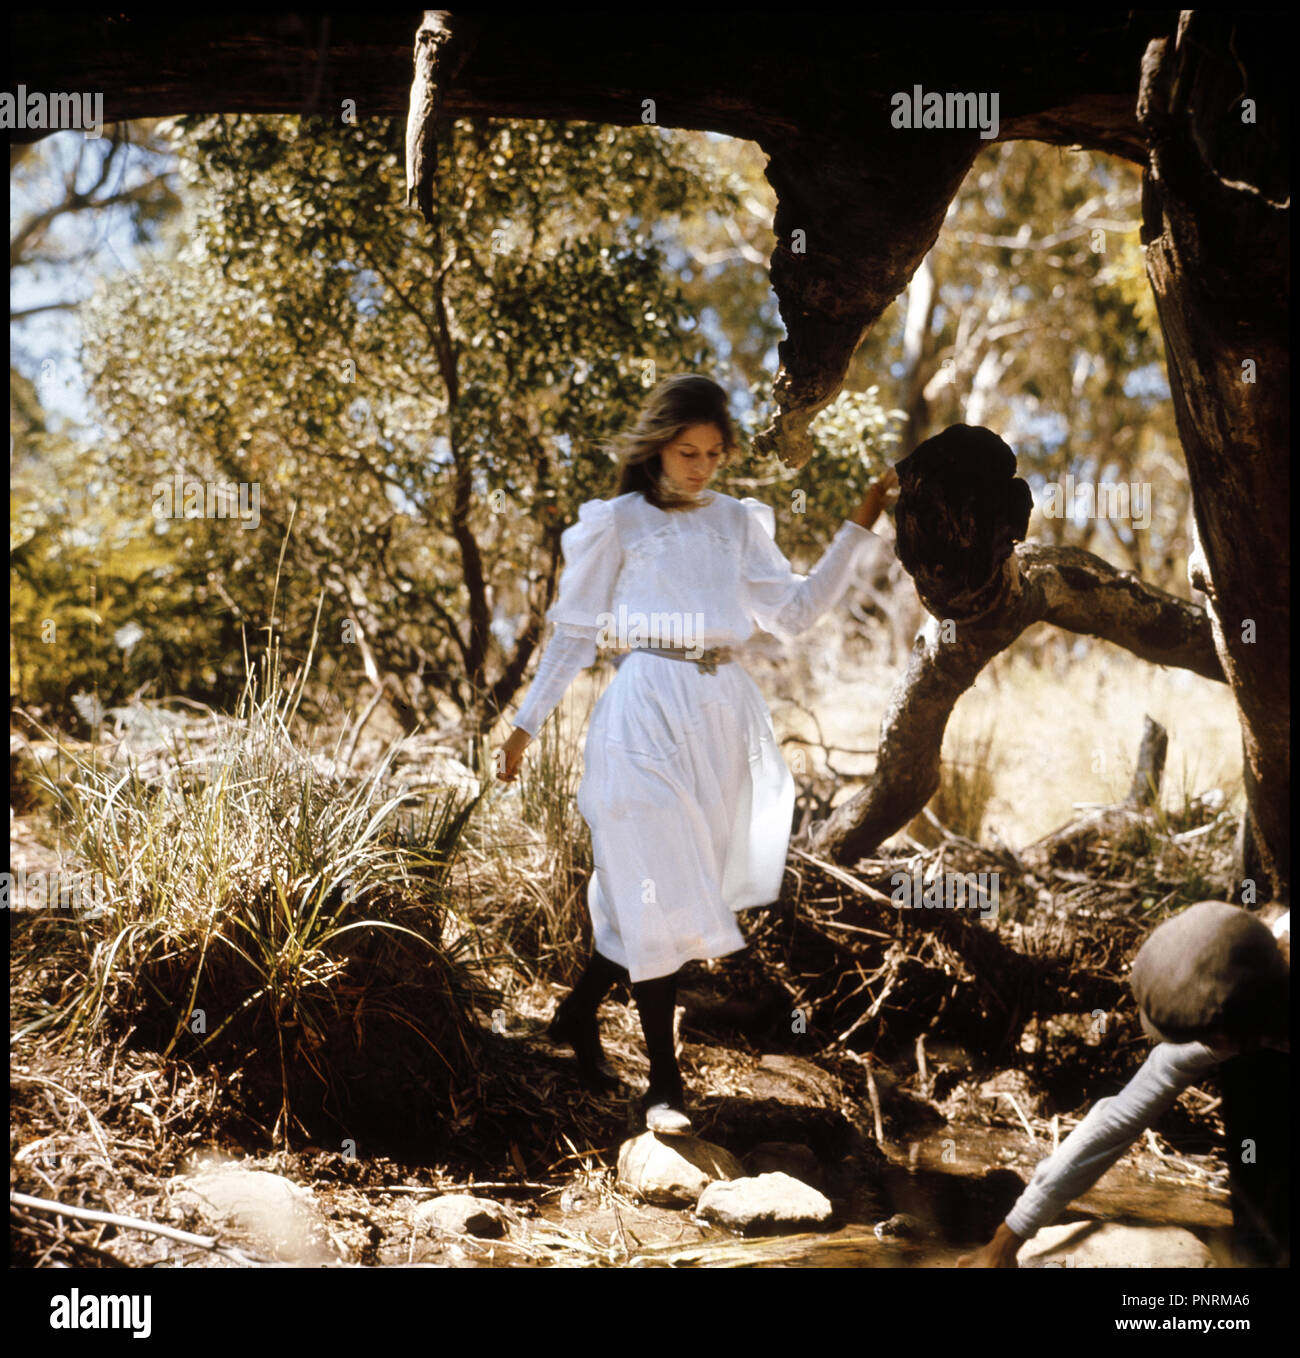 Prod DB © McElroy & McElroy / DR PICNIC A HANGING ROCK (PICNIC AT HANGING ROCK) de Peter Weir 1975 AUS avec Anne-Louise Lambert decouverte, roches, randonnee, grotte d'apres le roman de Joan Lindsay Stock Photo